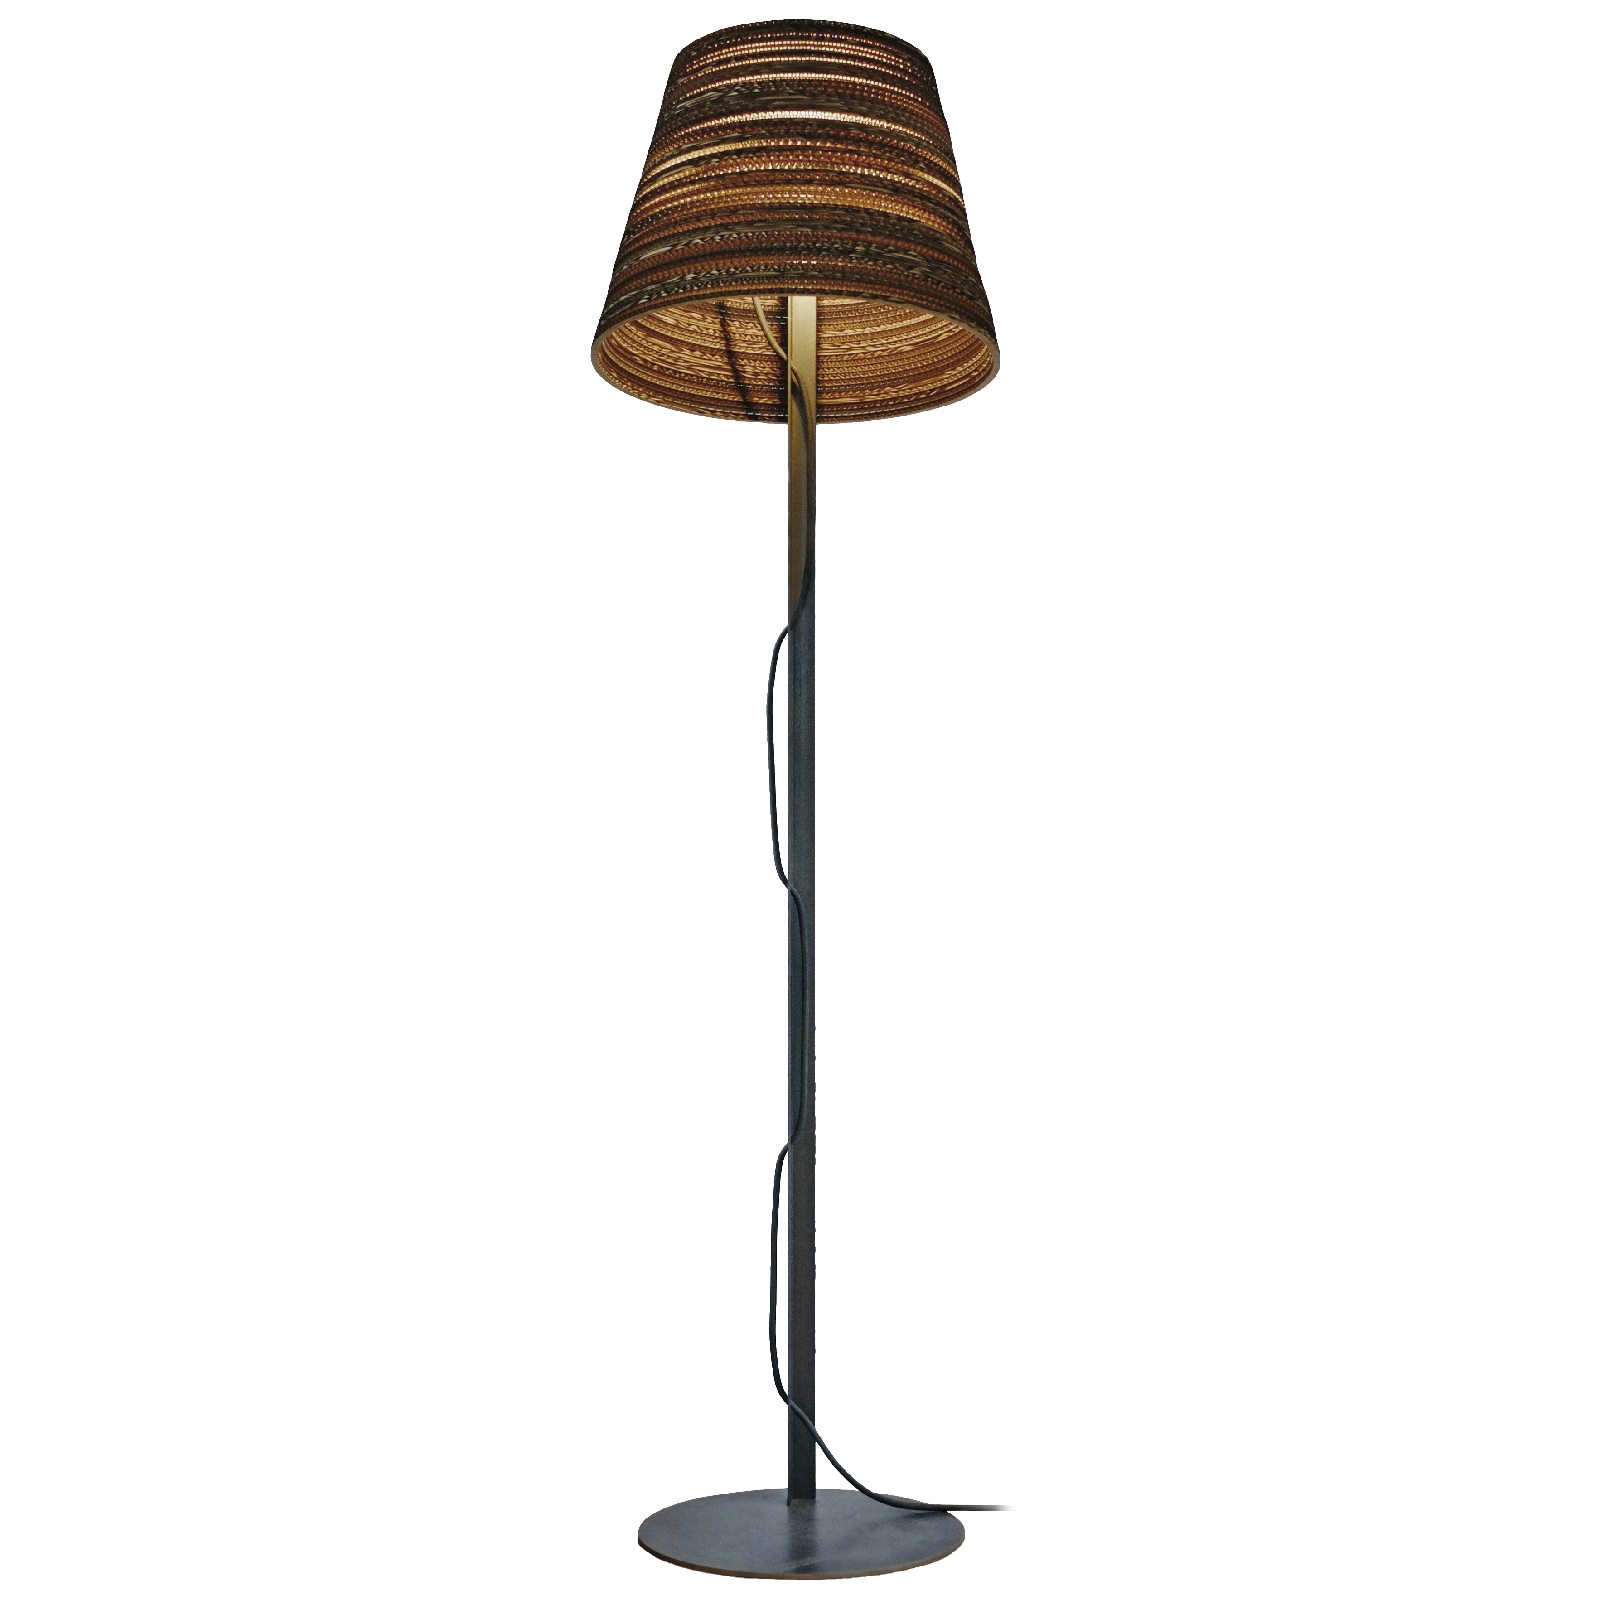 Graypants Tilt Floor Lamp - Large